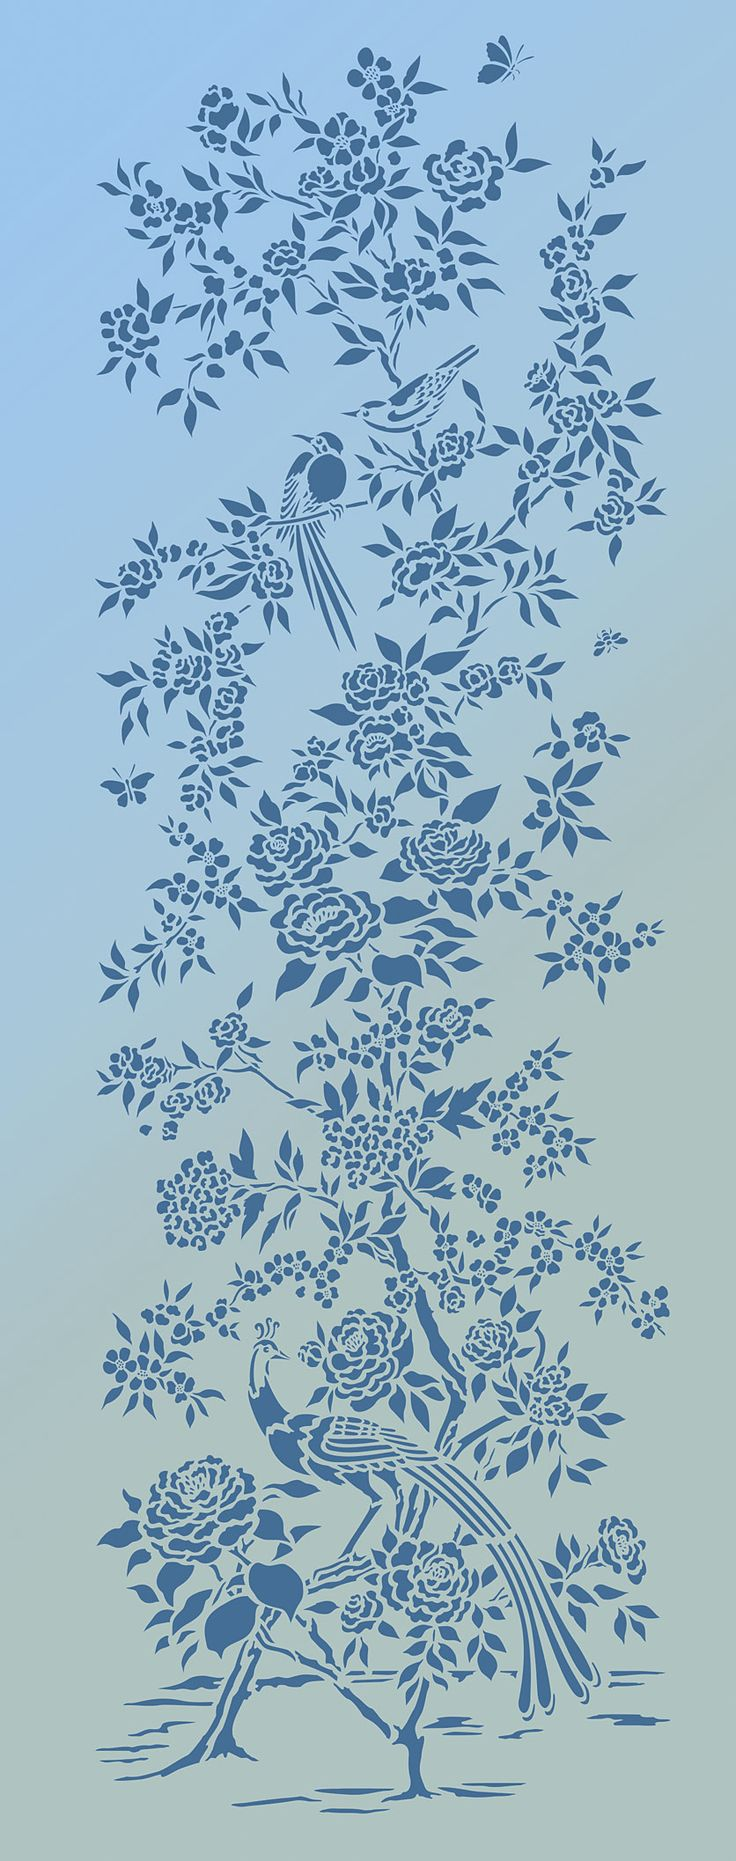 513 best stencil images on pinterest sketches bird template and small chinoiserie stencil henny donovan motif stencil patternsstencil templatesstencil designspainting amipublicfo Images